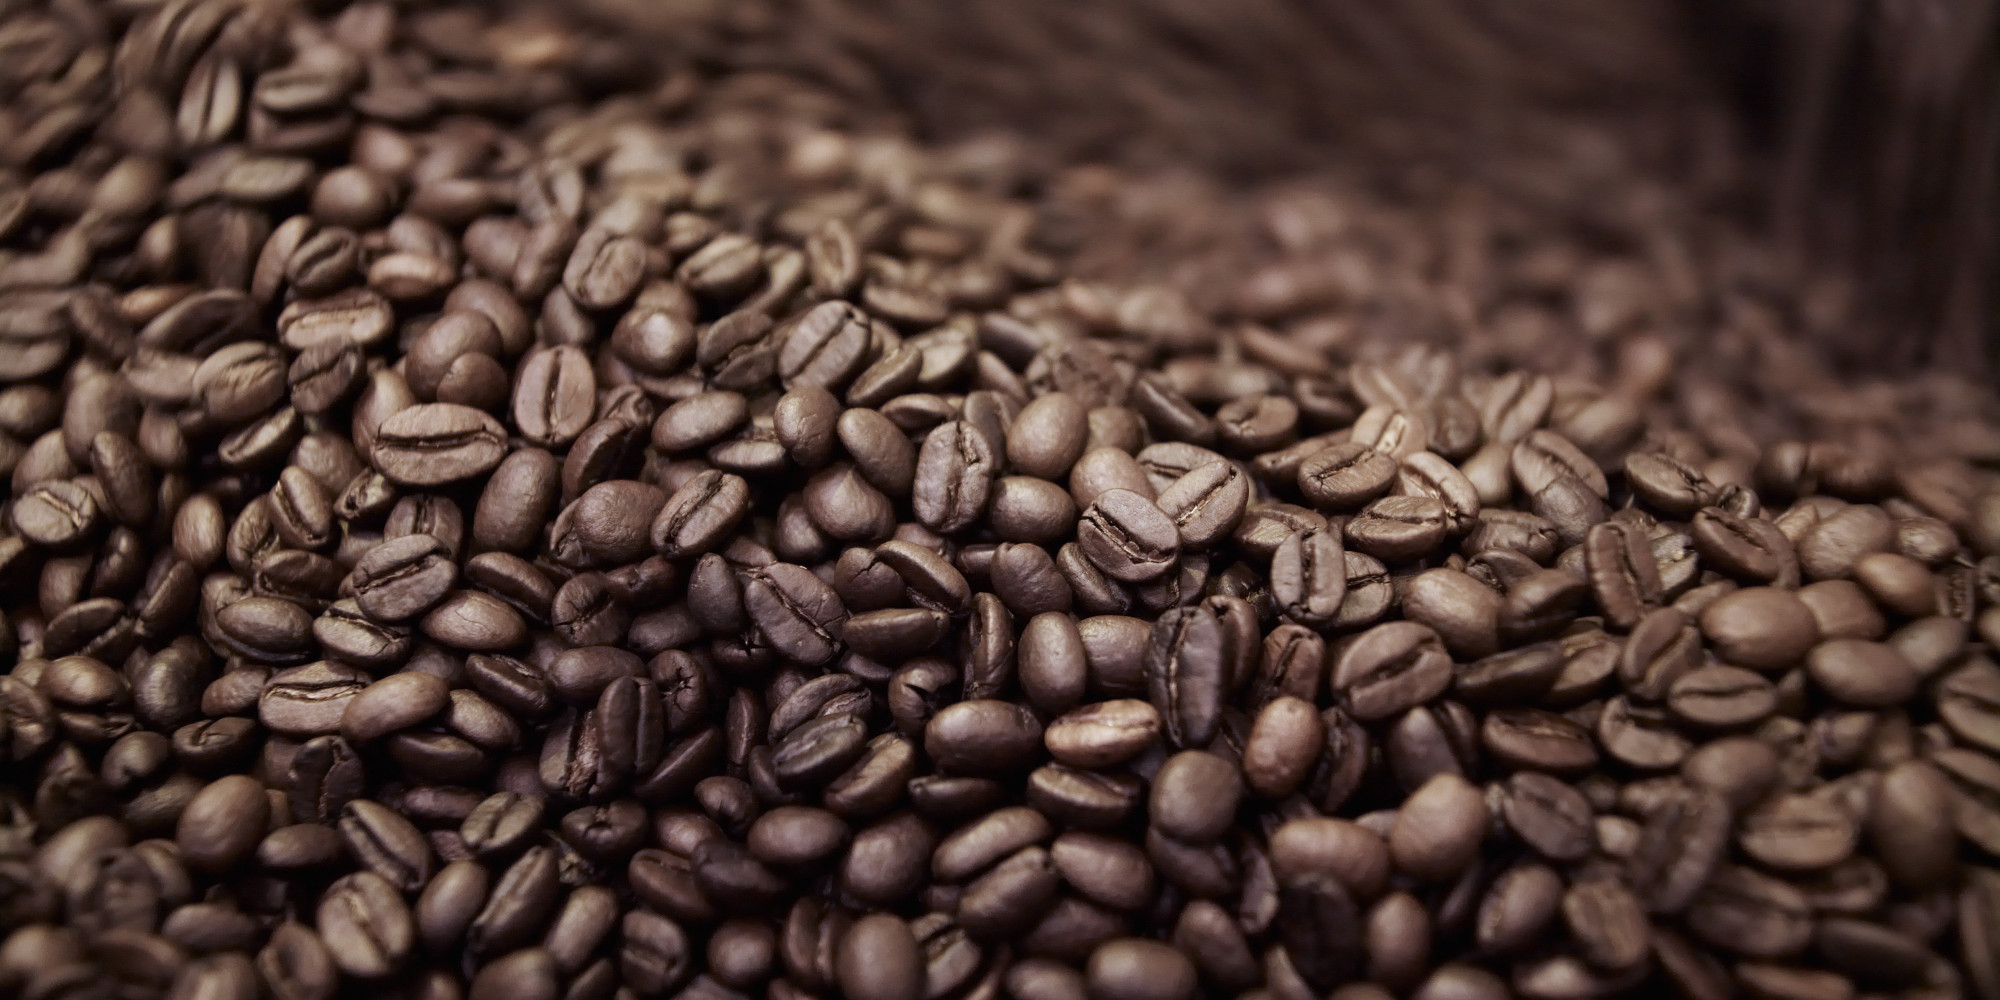 Can Coffee Grounds Be Used More Than Once